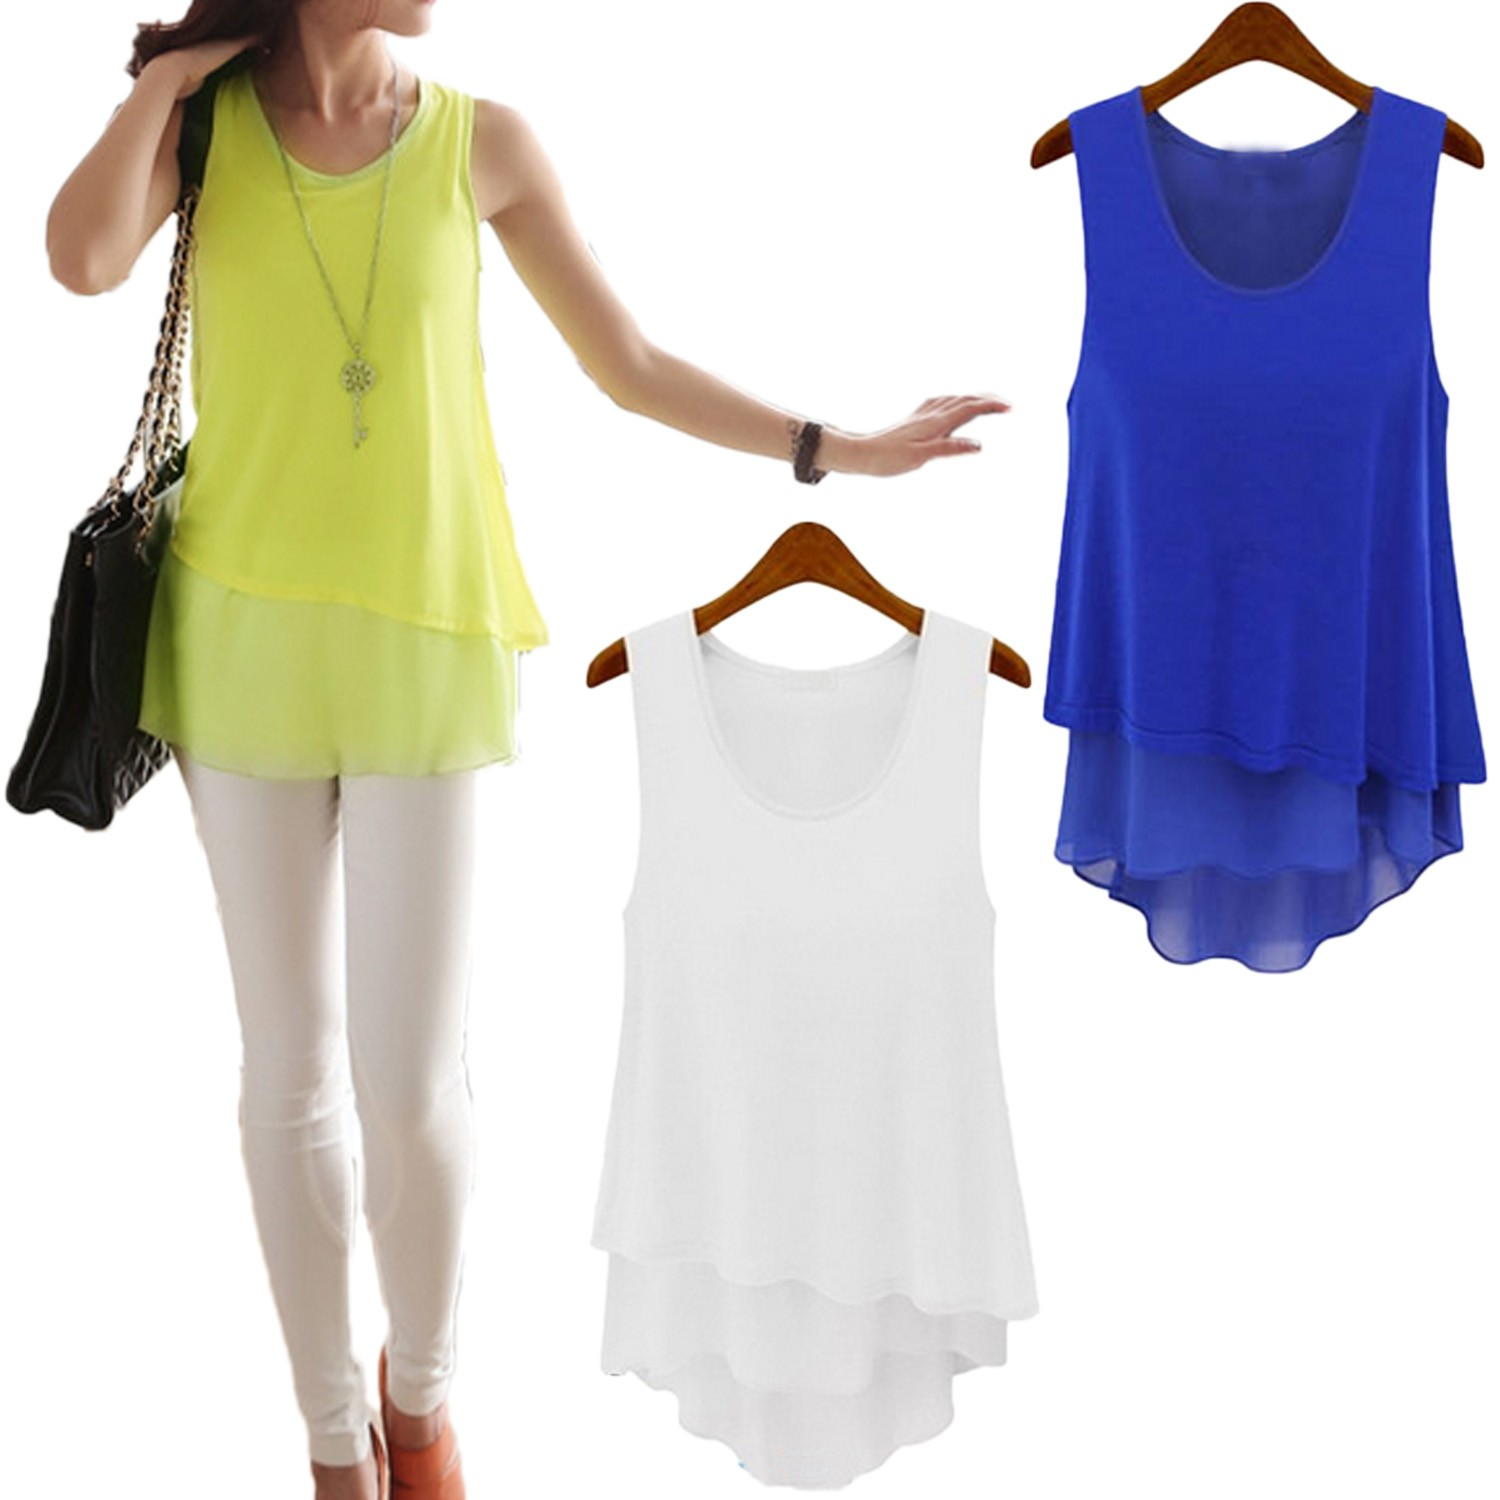 Sleeveless Chiffon Tank Top Blouse - 6992#